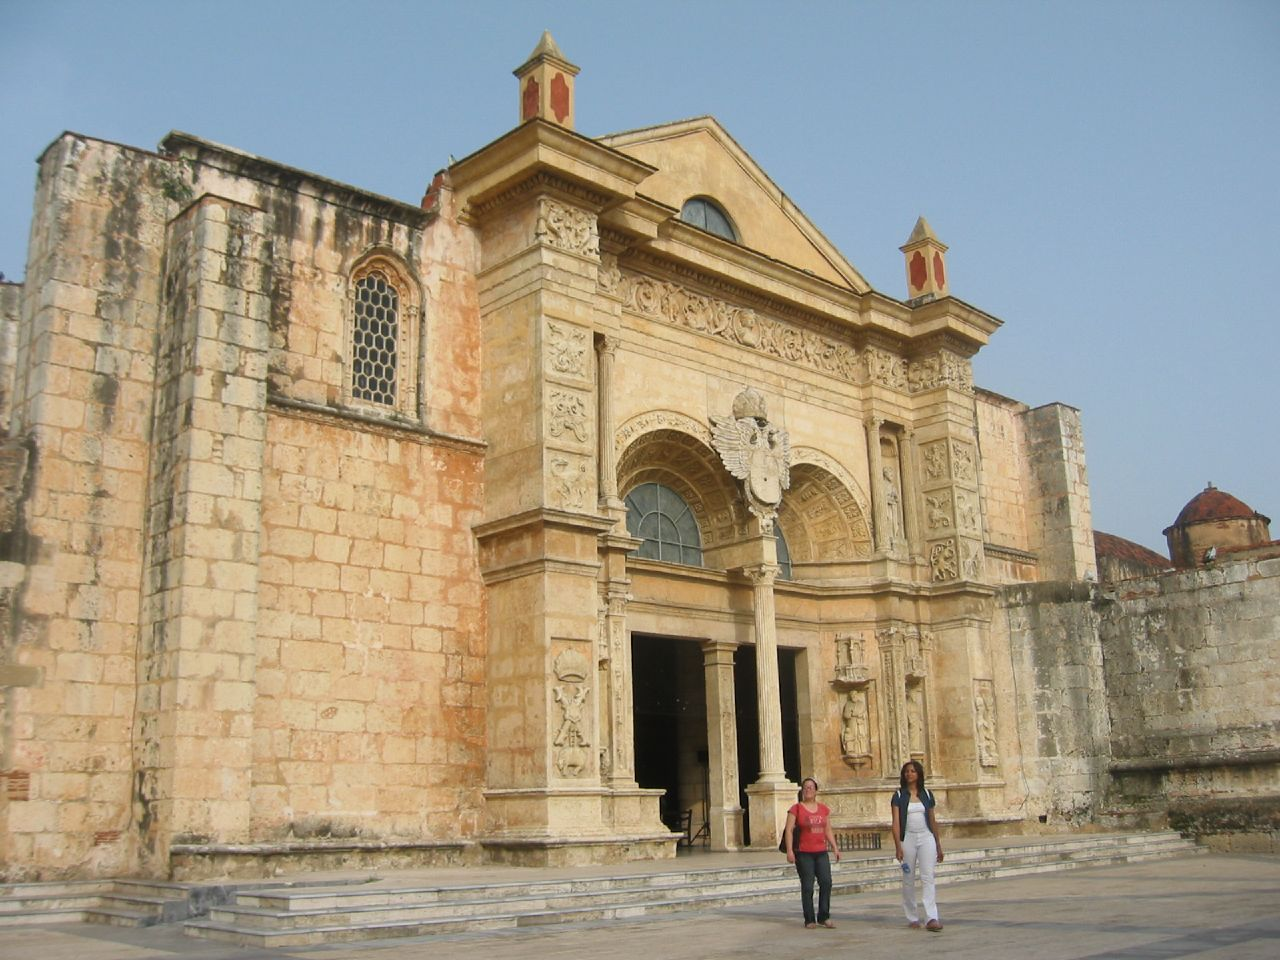 https://upload.wikimedia.org/wikipedia/commons/a/a3/Catedral_Santo_Domingo.jpg